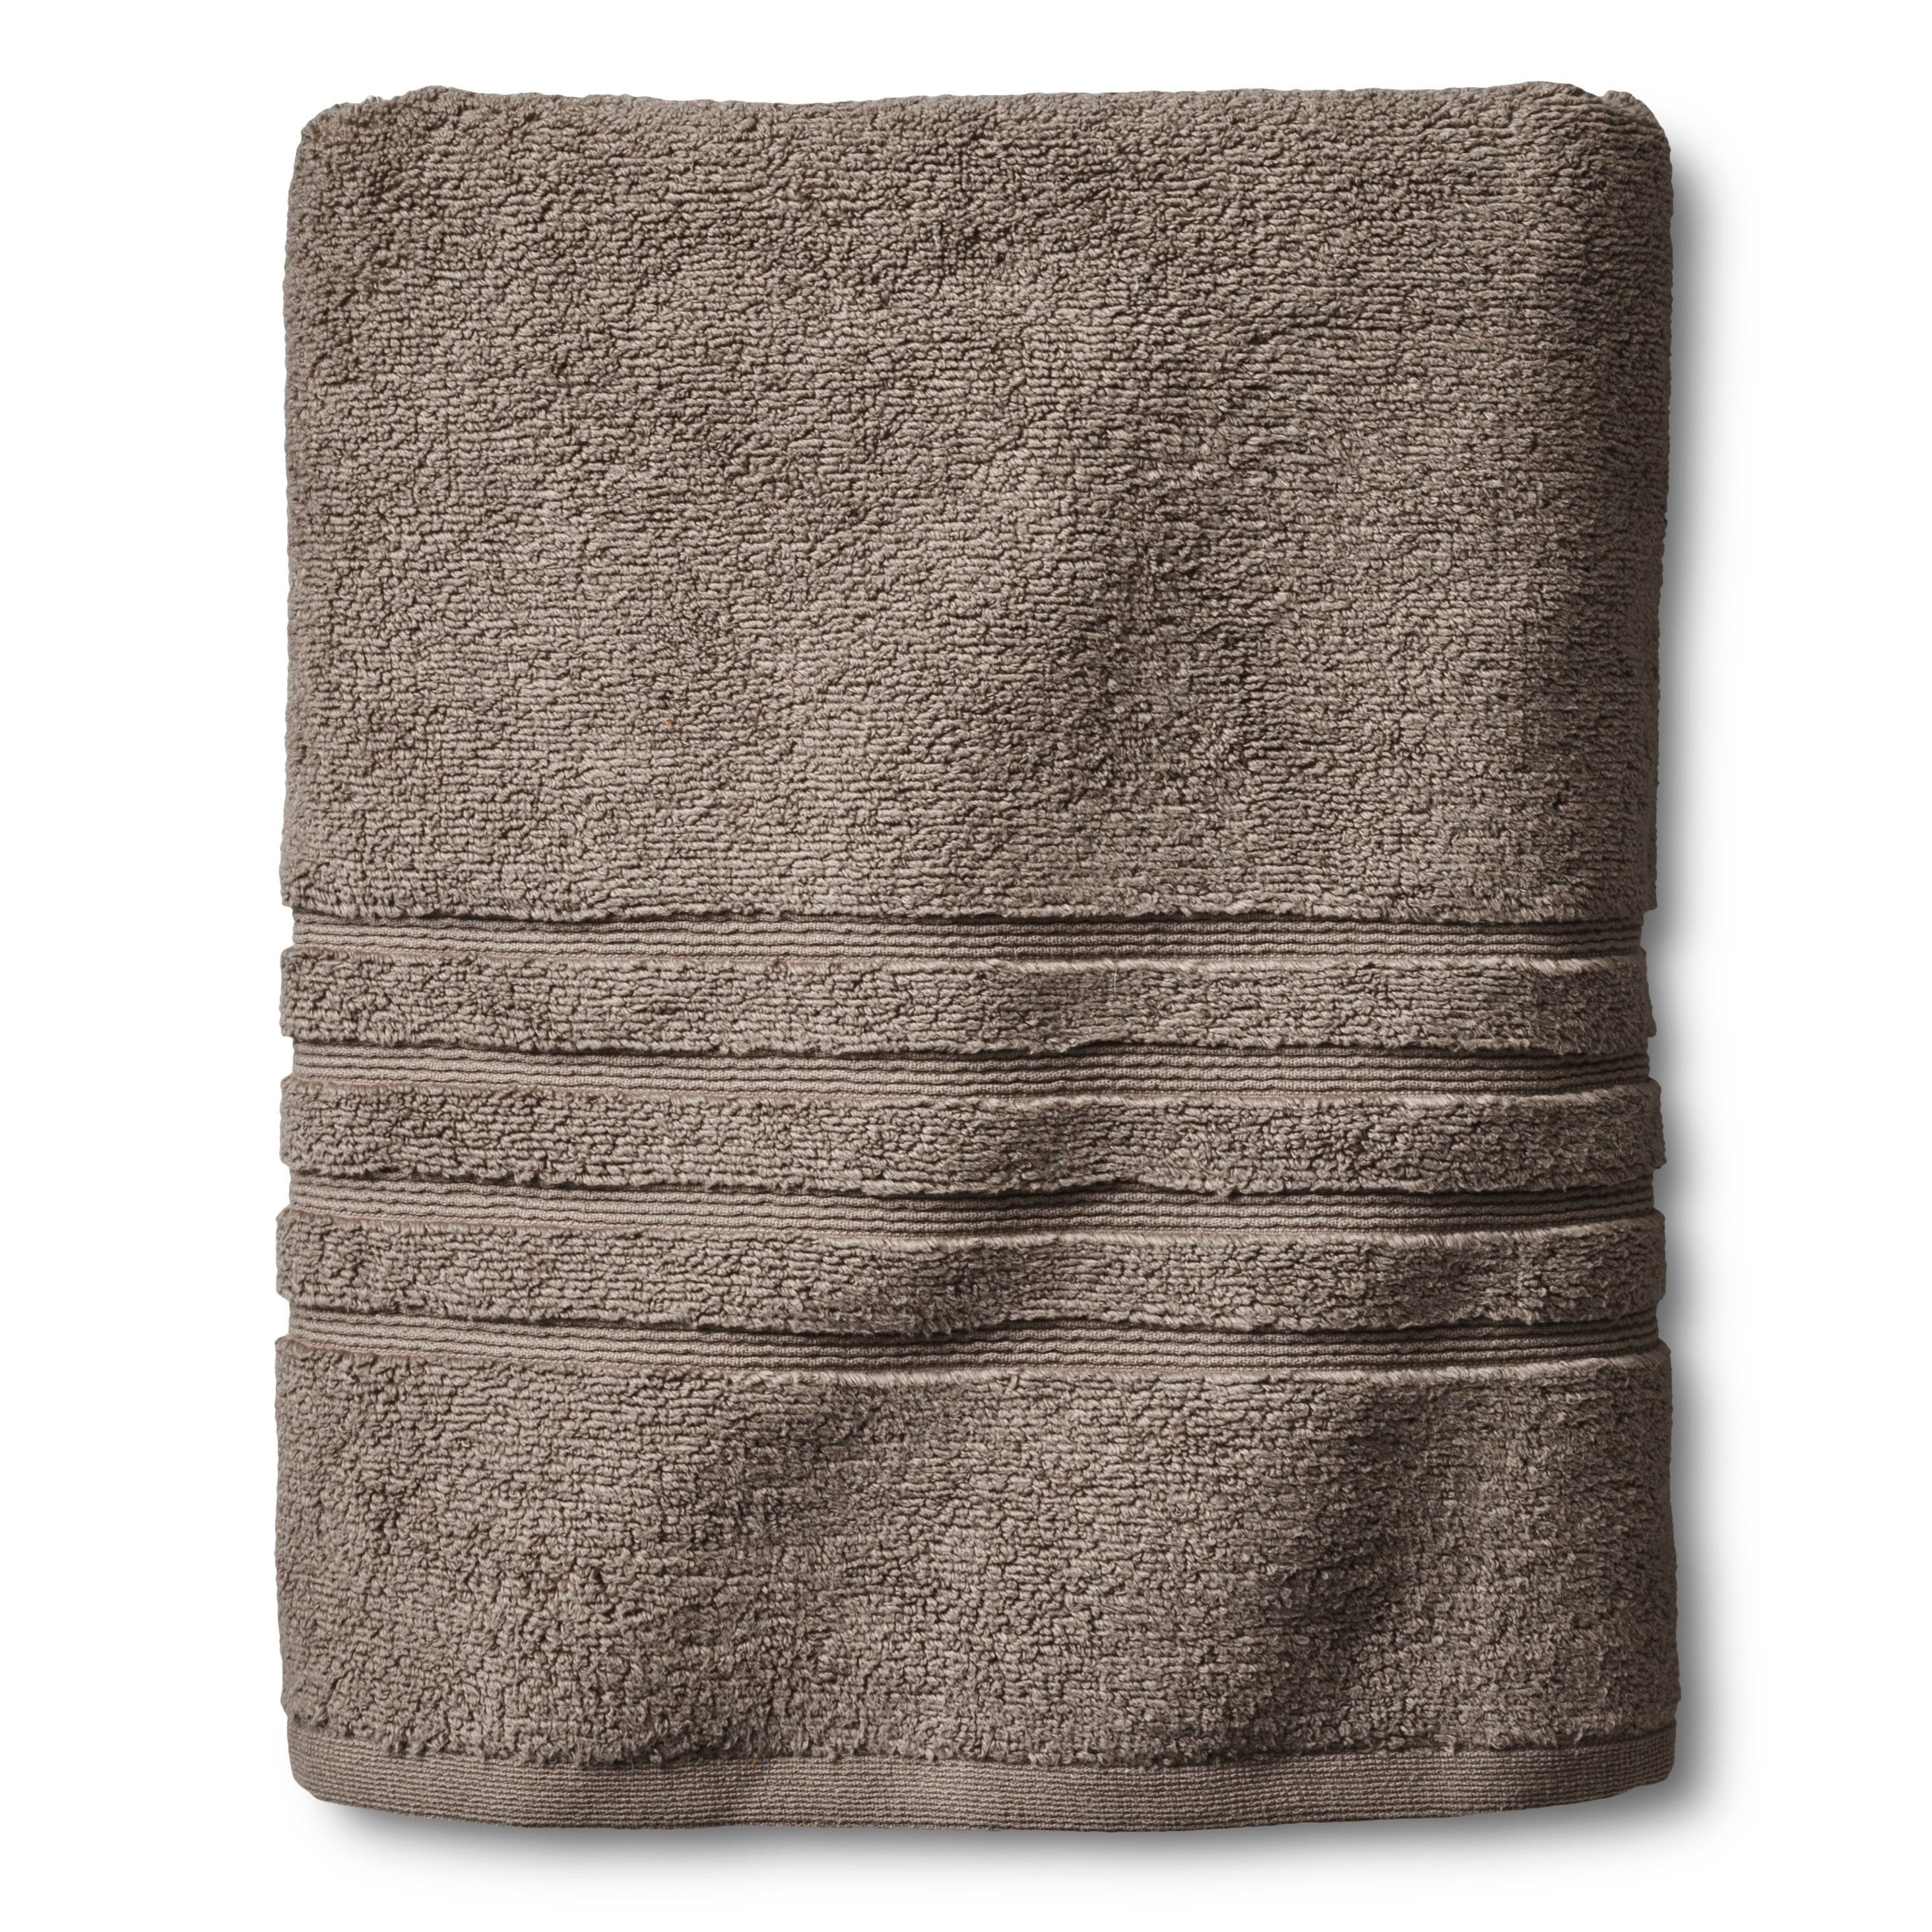 Feel Luxury Everyday With The Fieldcrest Luxury Solid Towels